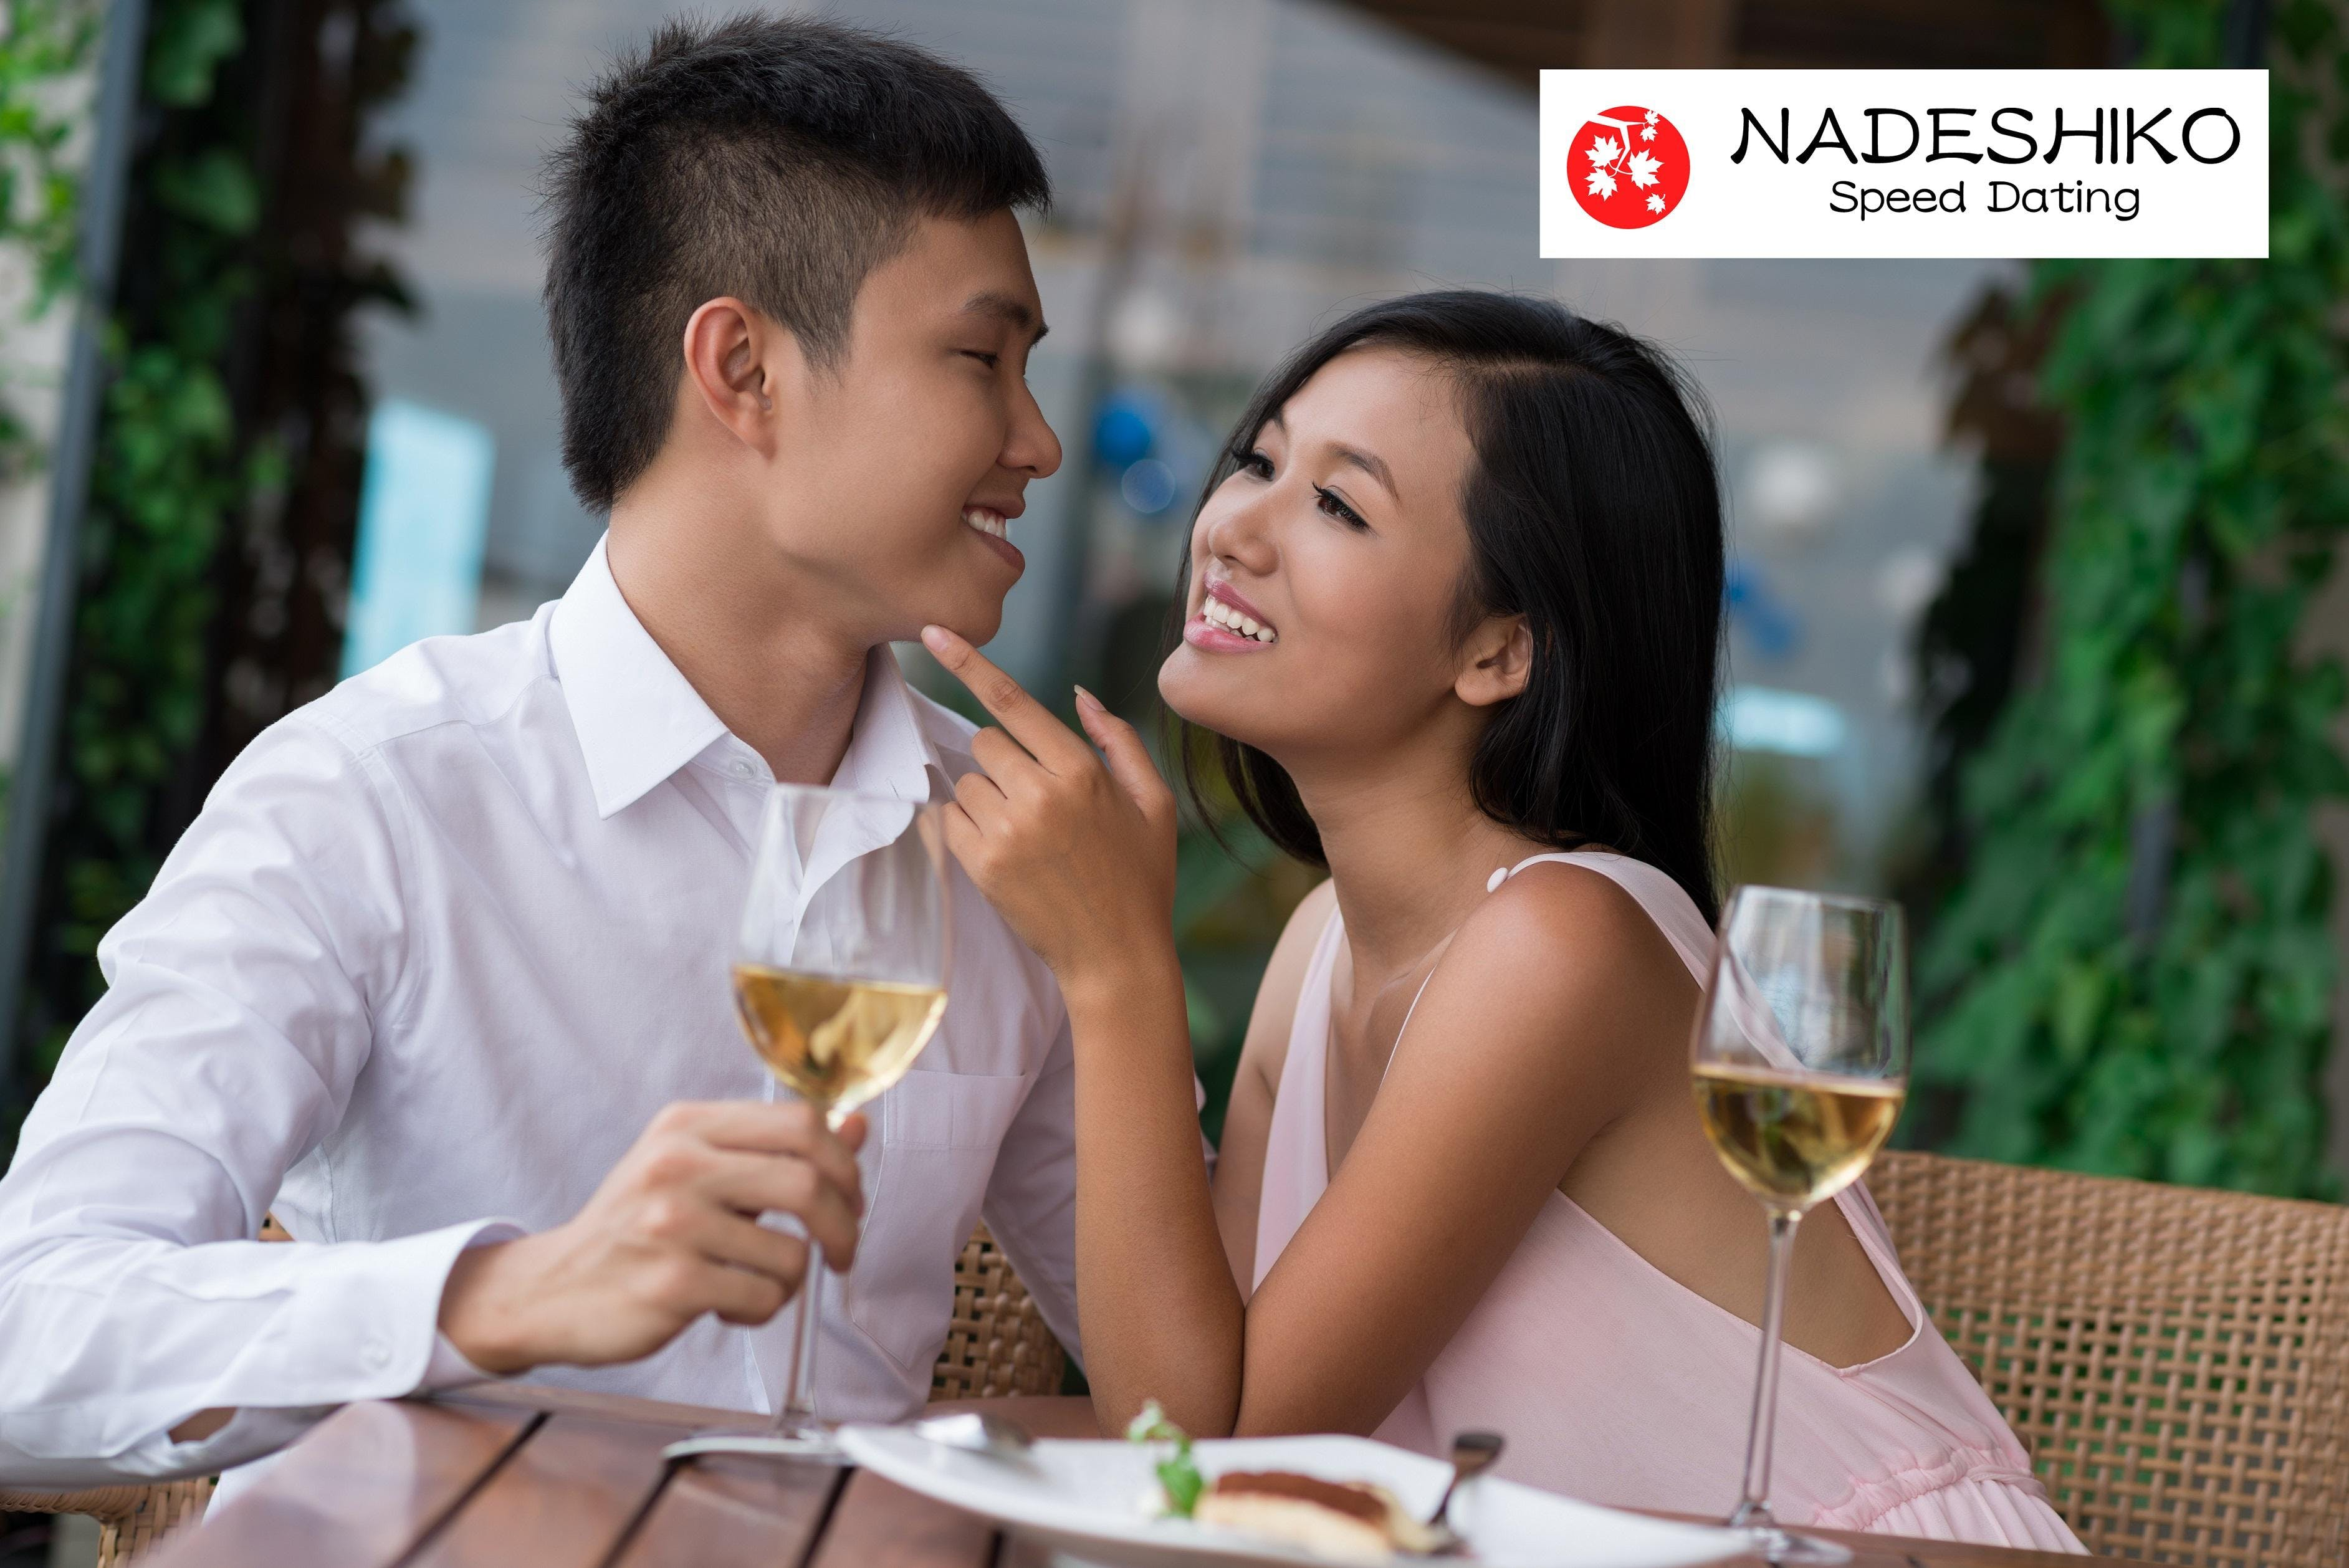 Speed dating events in barrie ontario